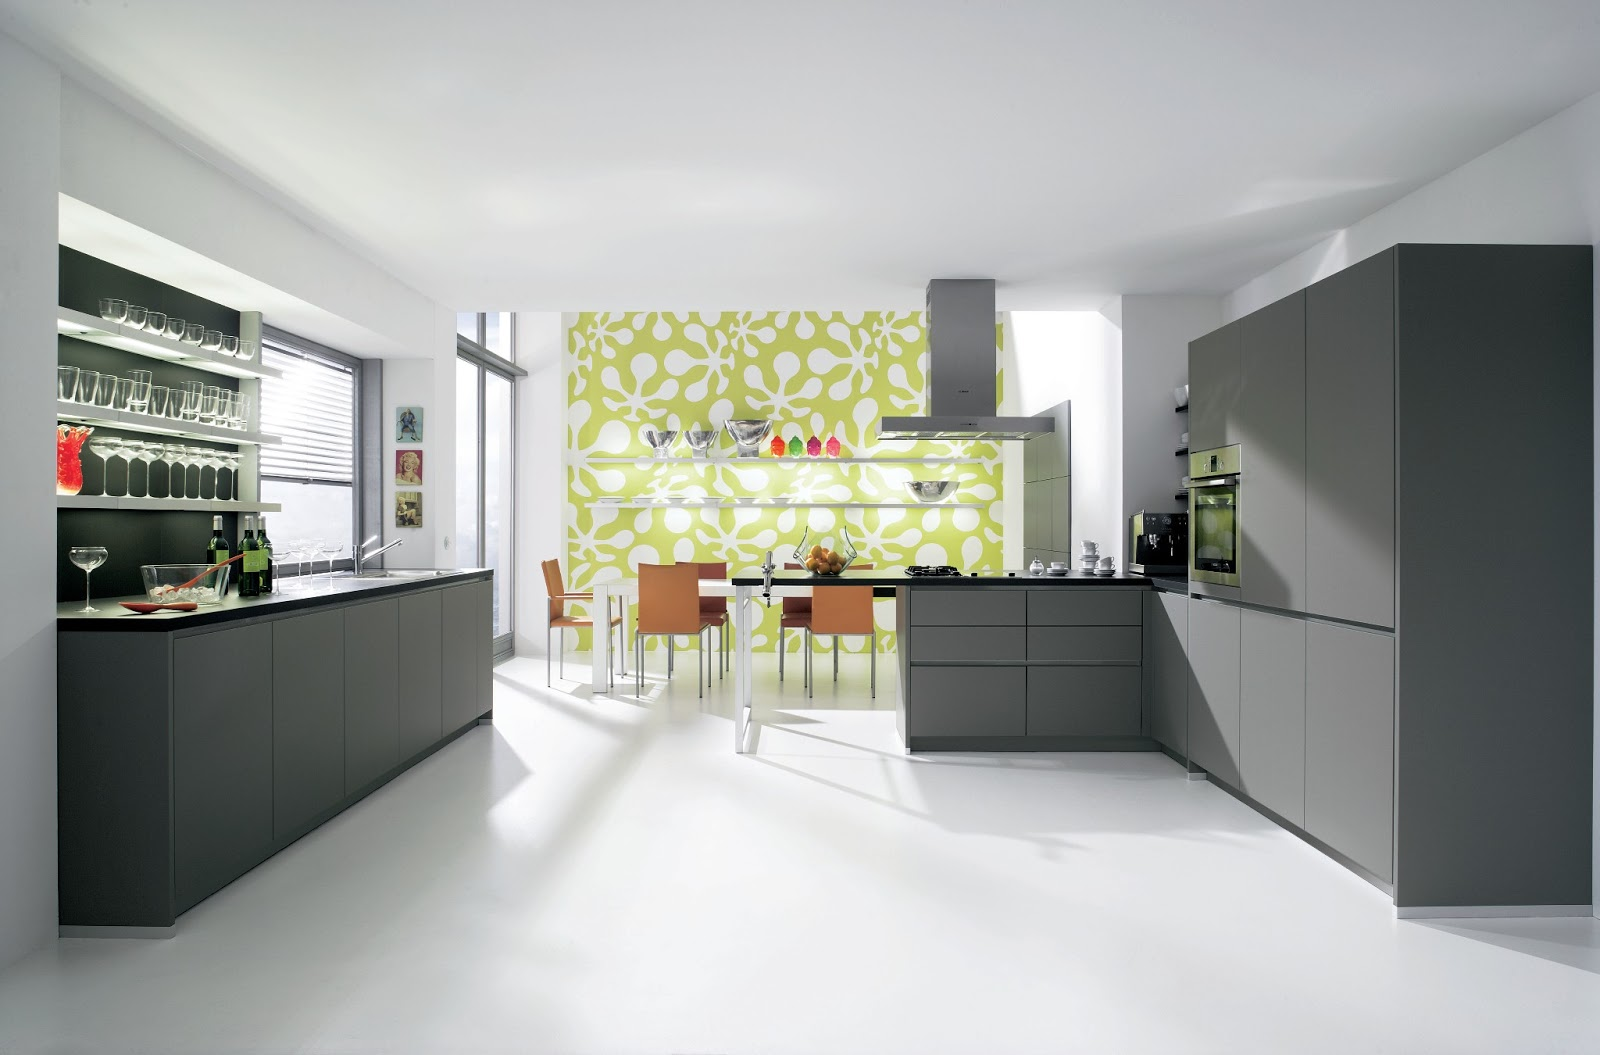 Cuisine design laqu e mate gris anthracite for Poignee cuisine design